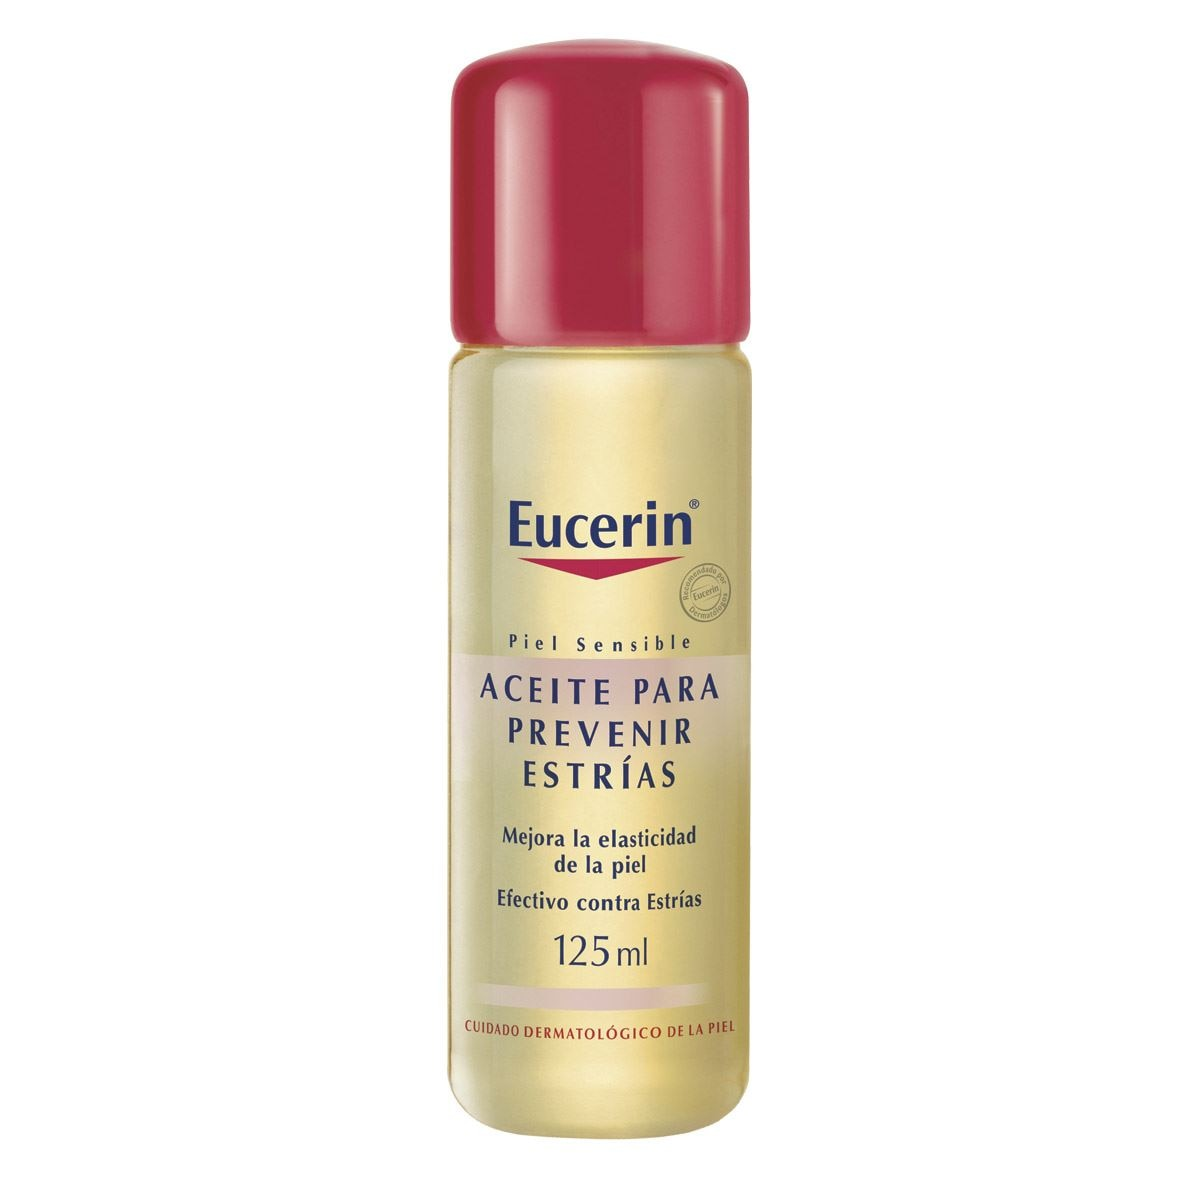 Eucerin, aceite antiestrias, 125ml  - Sanborns